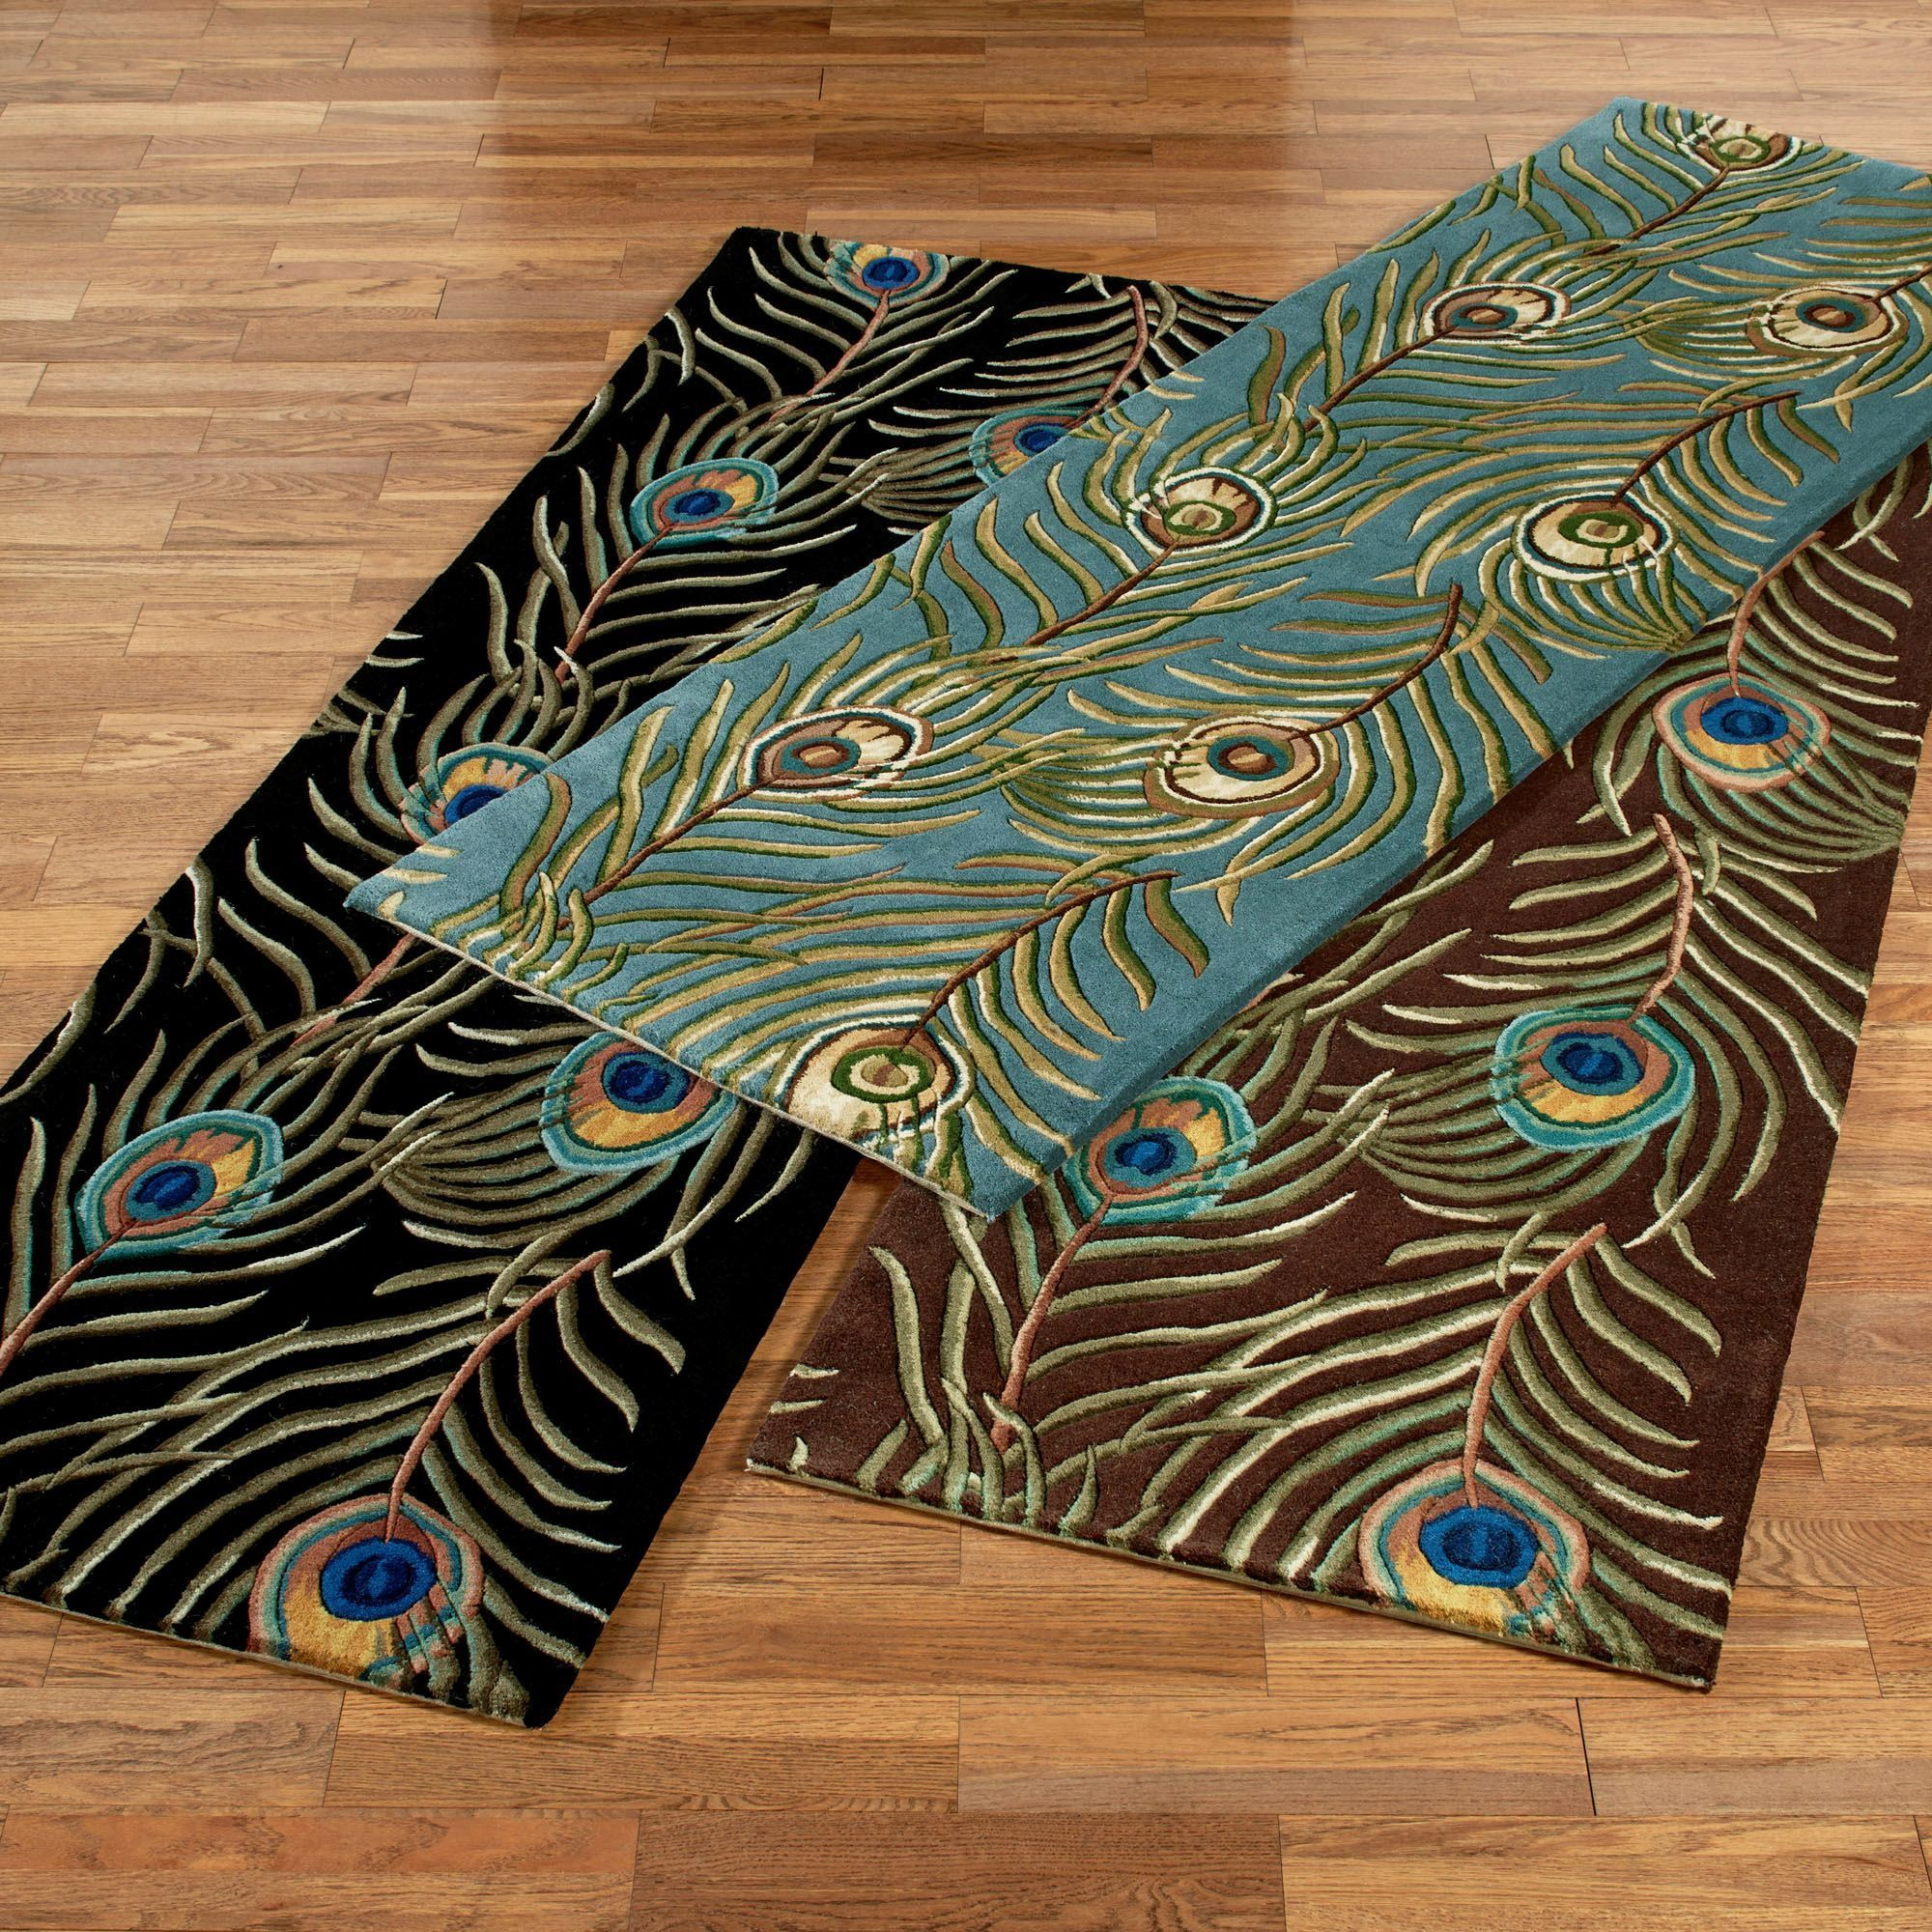 peacock feathers rug runner | rug runner, peacock feathers and